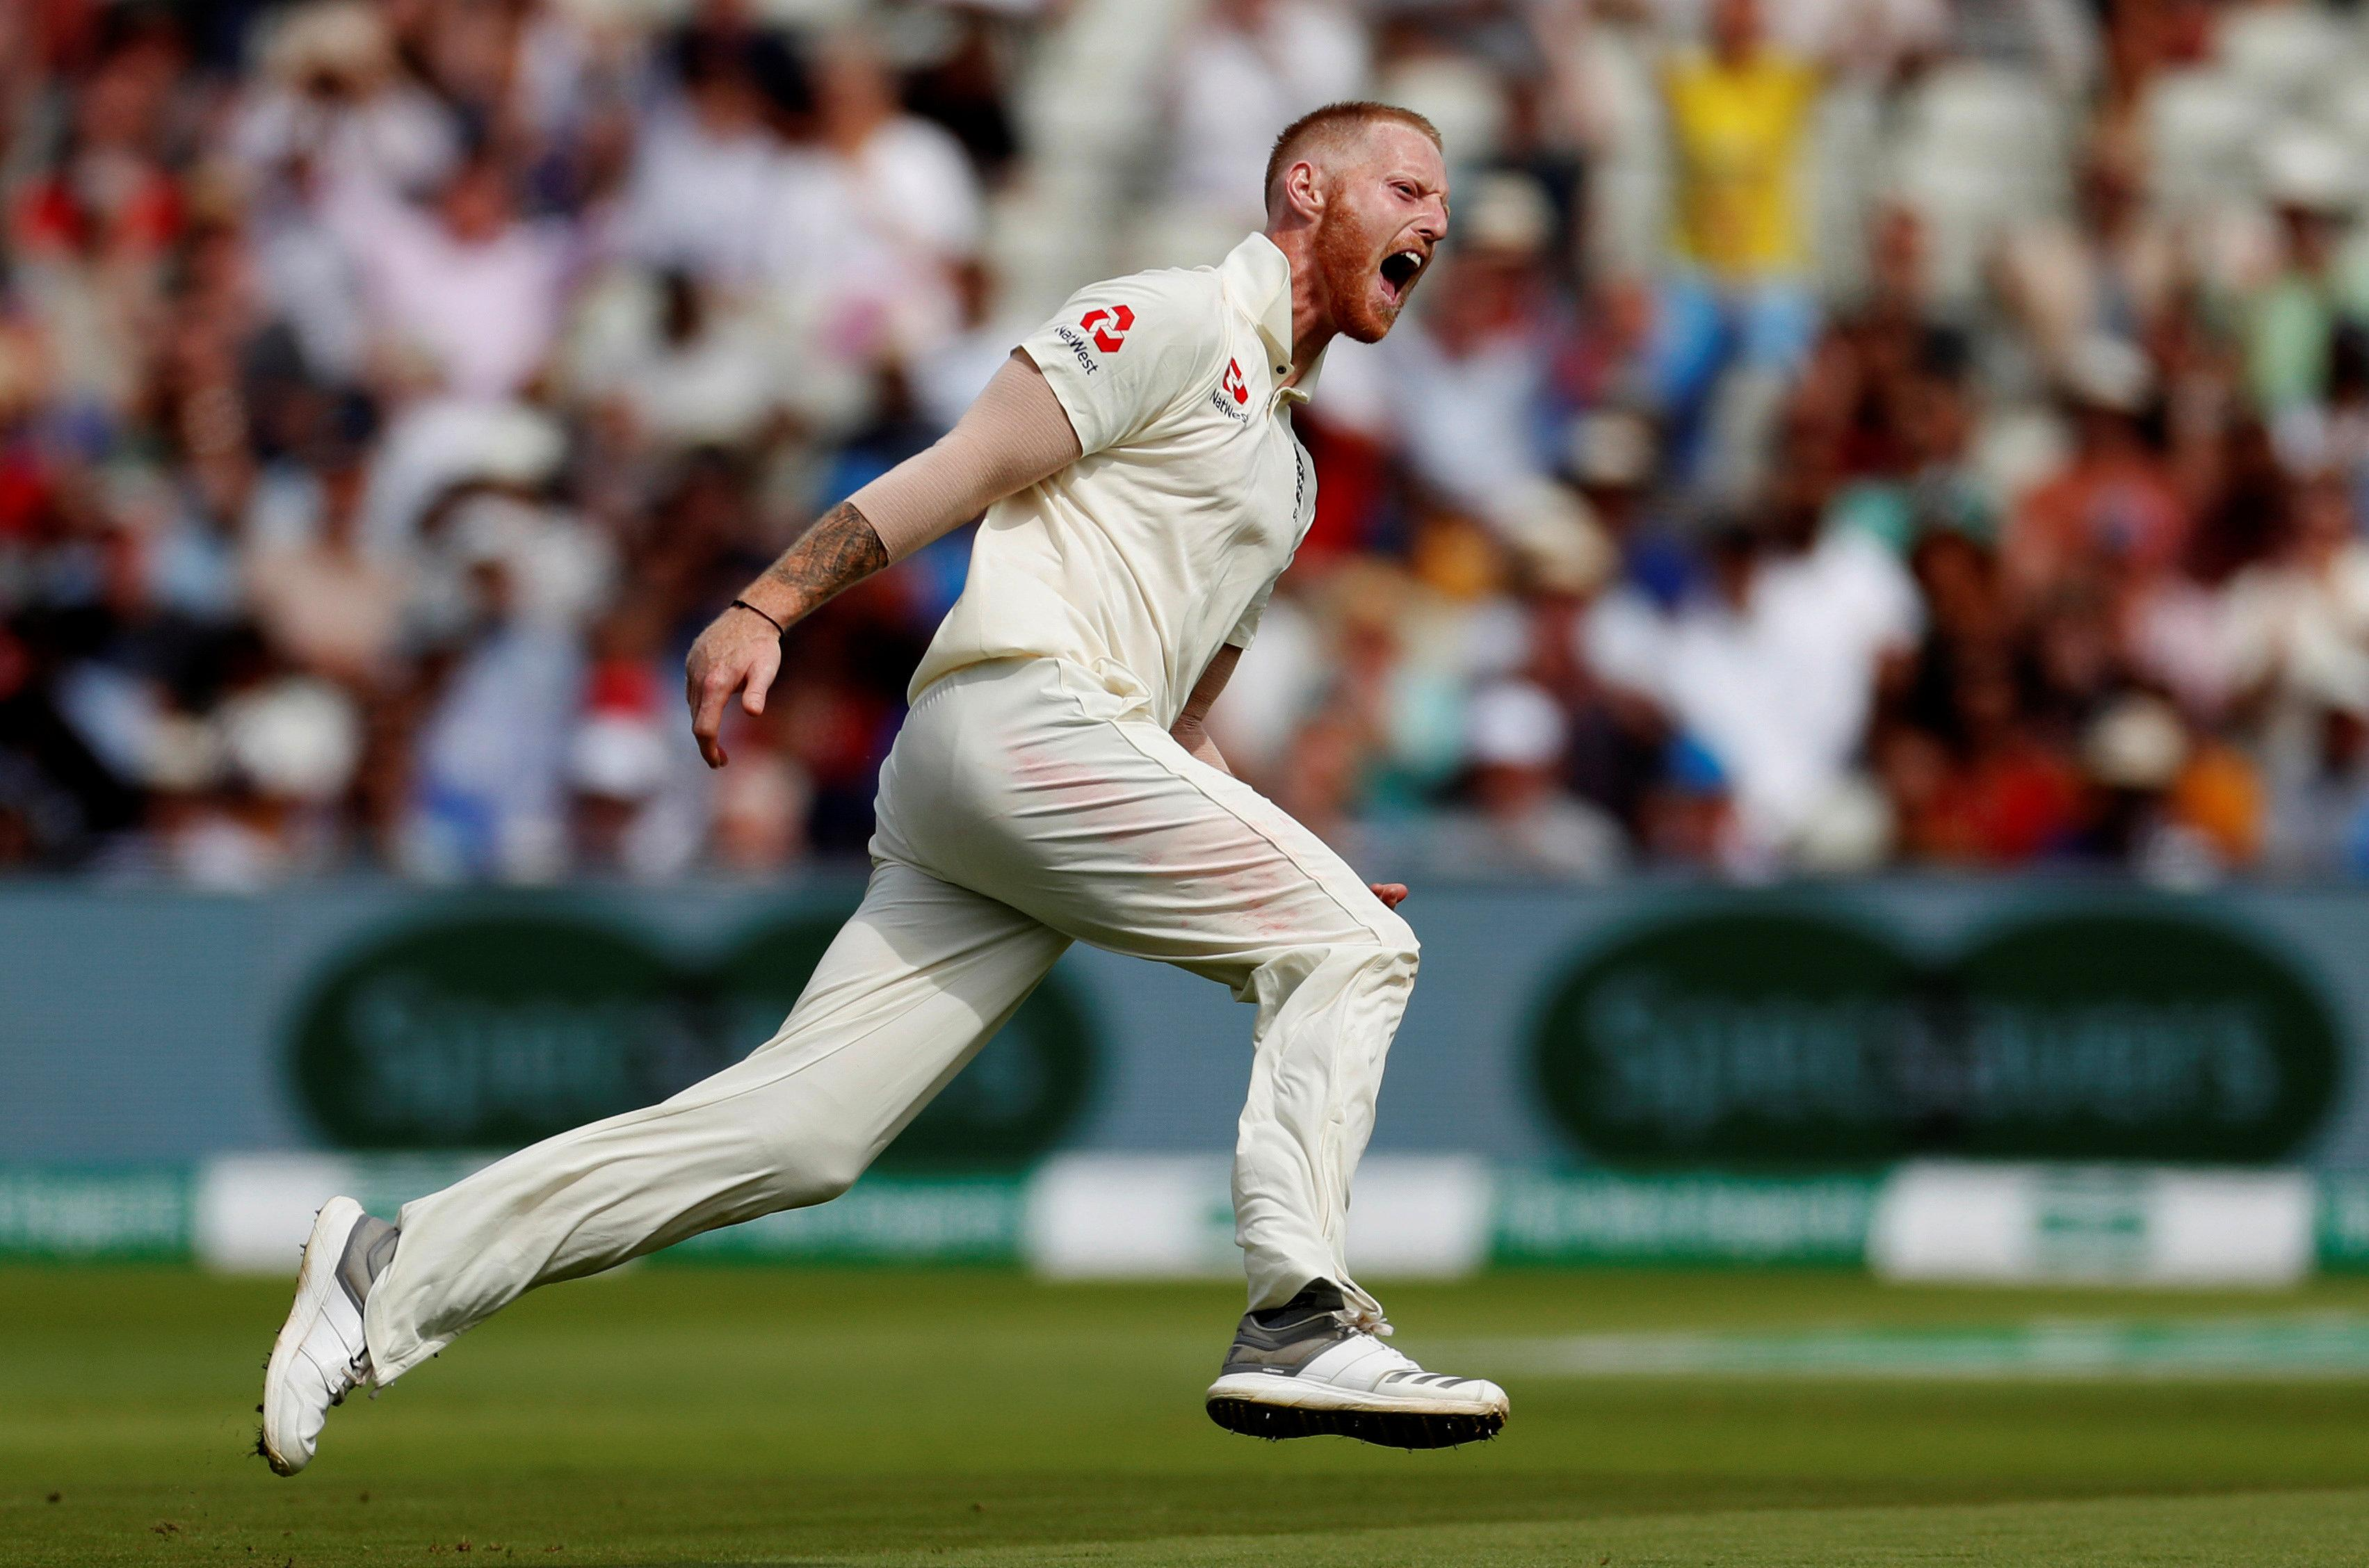 Stokes starred in England's thrilling Test win over India at Edgbaston